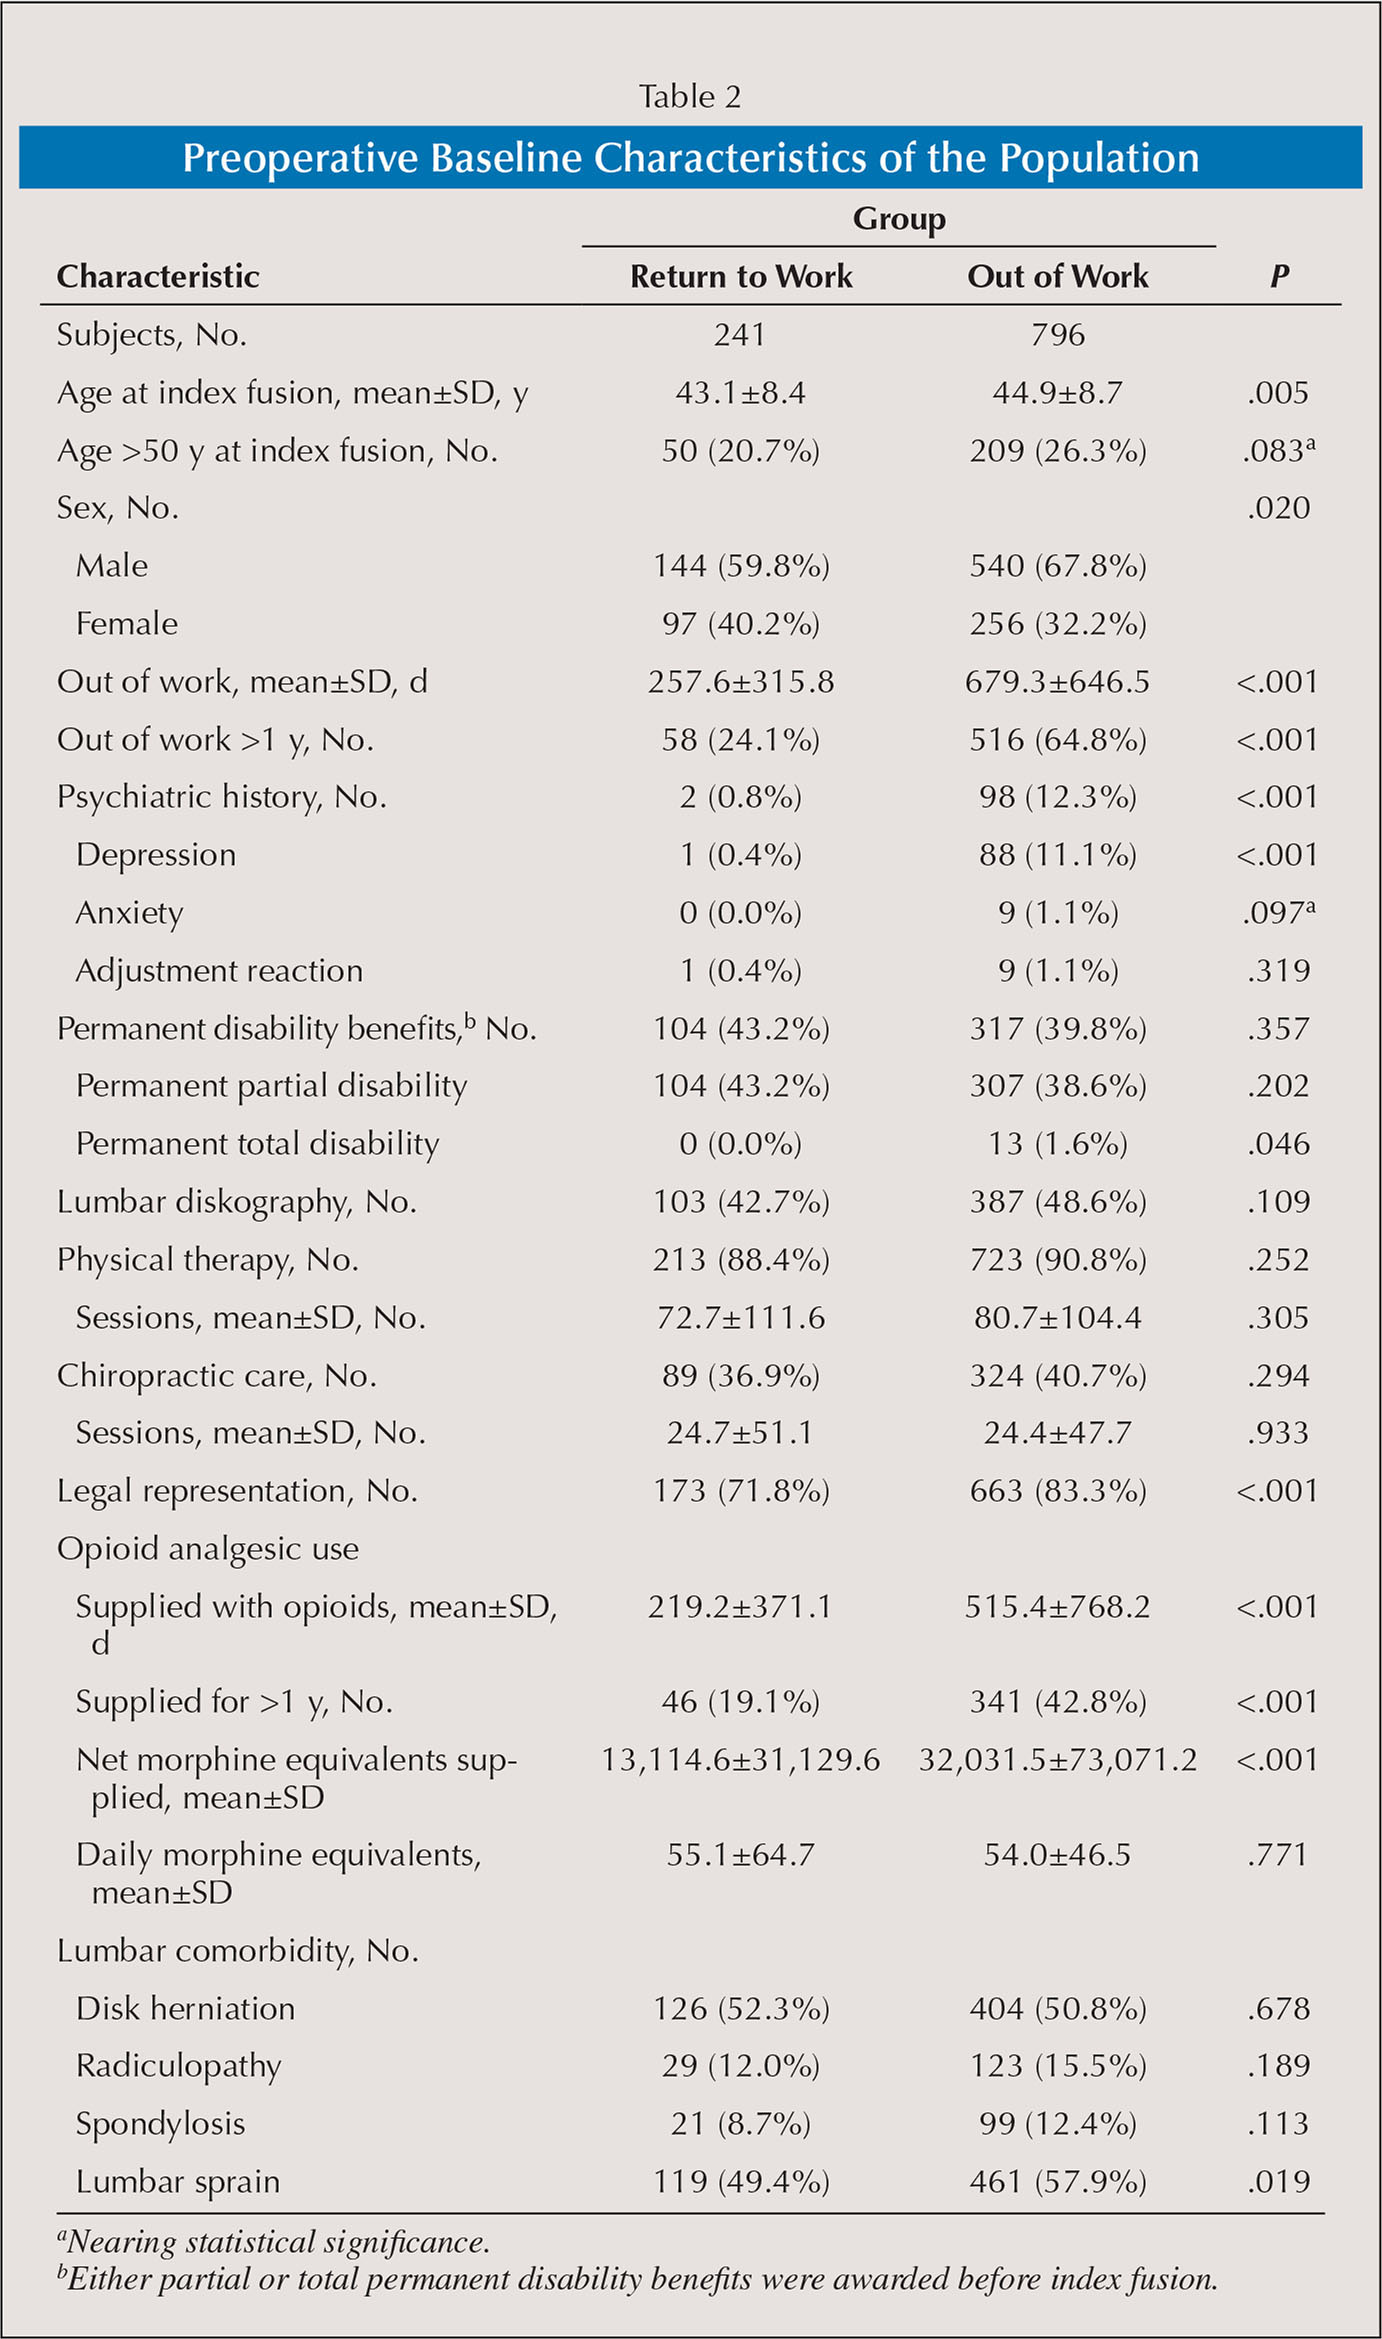 Preoperative Baseline Characteristics of the Population